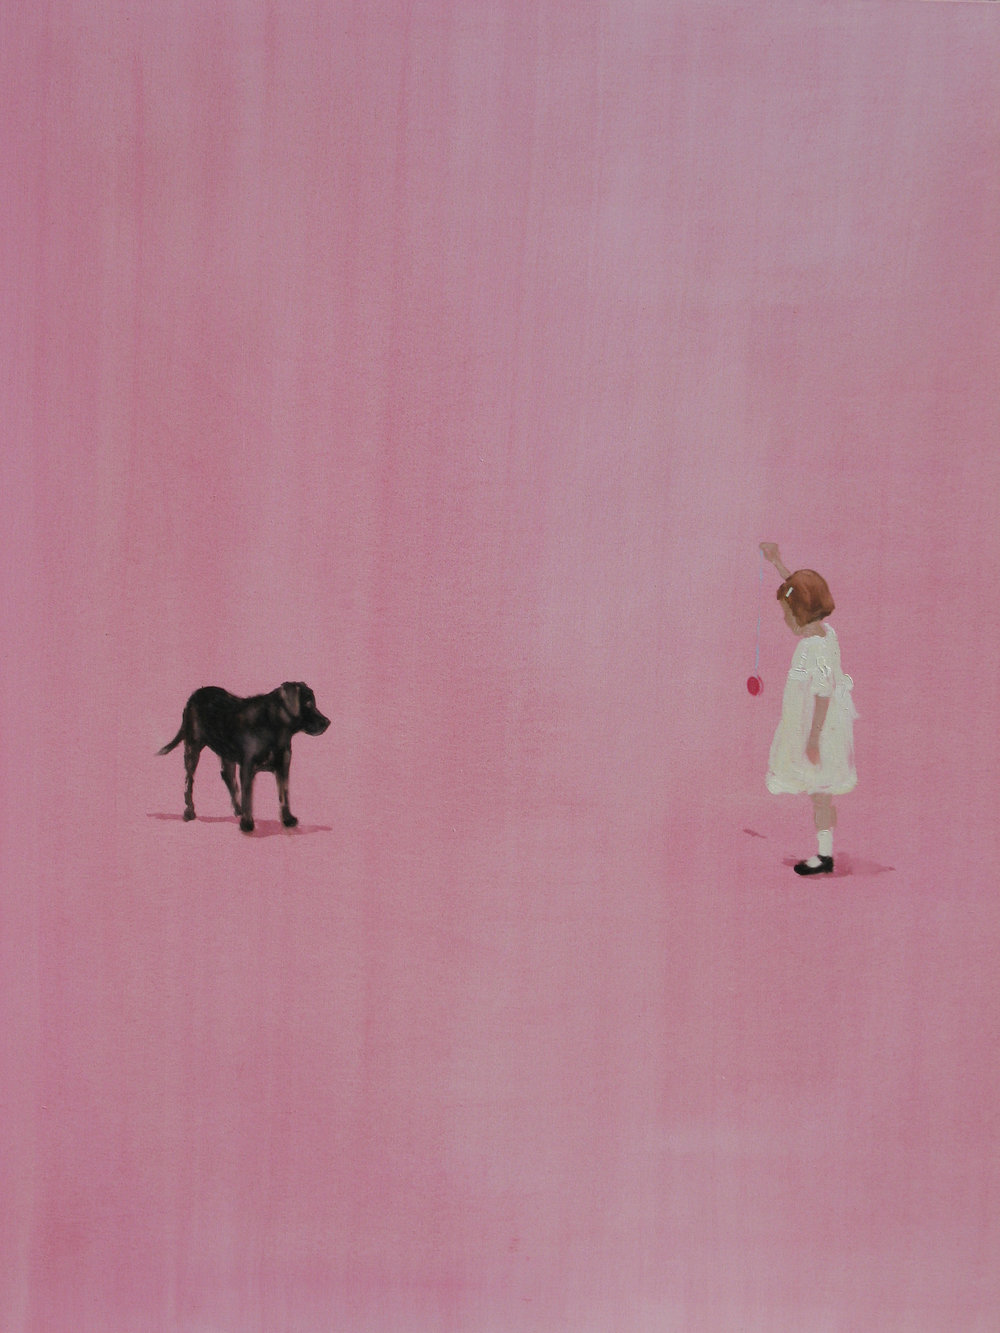 Painted Room (lucky puppy) 44 x 38 in. oil on canvas 2008